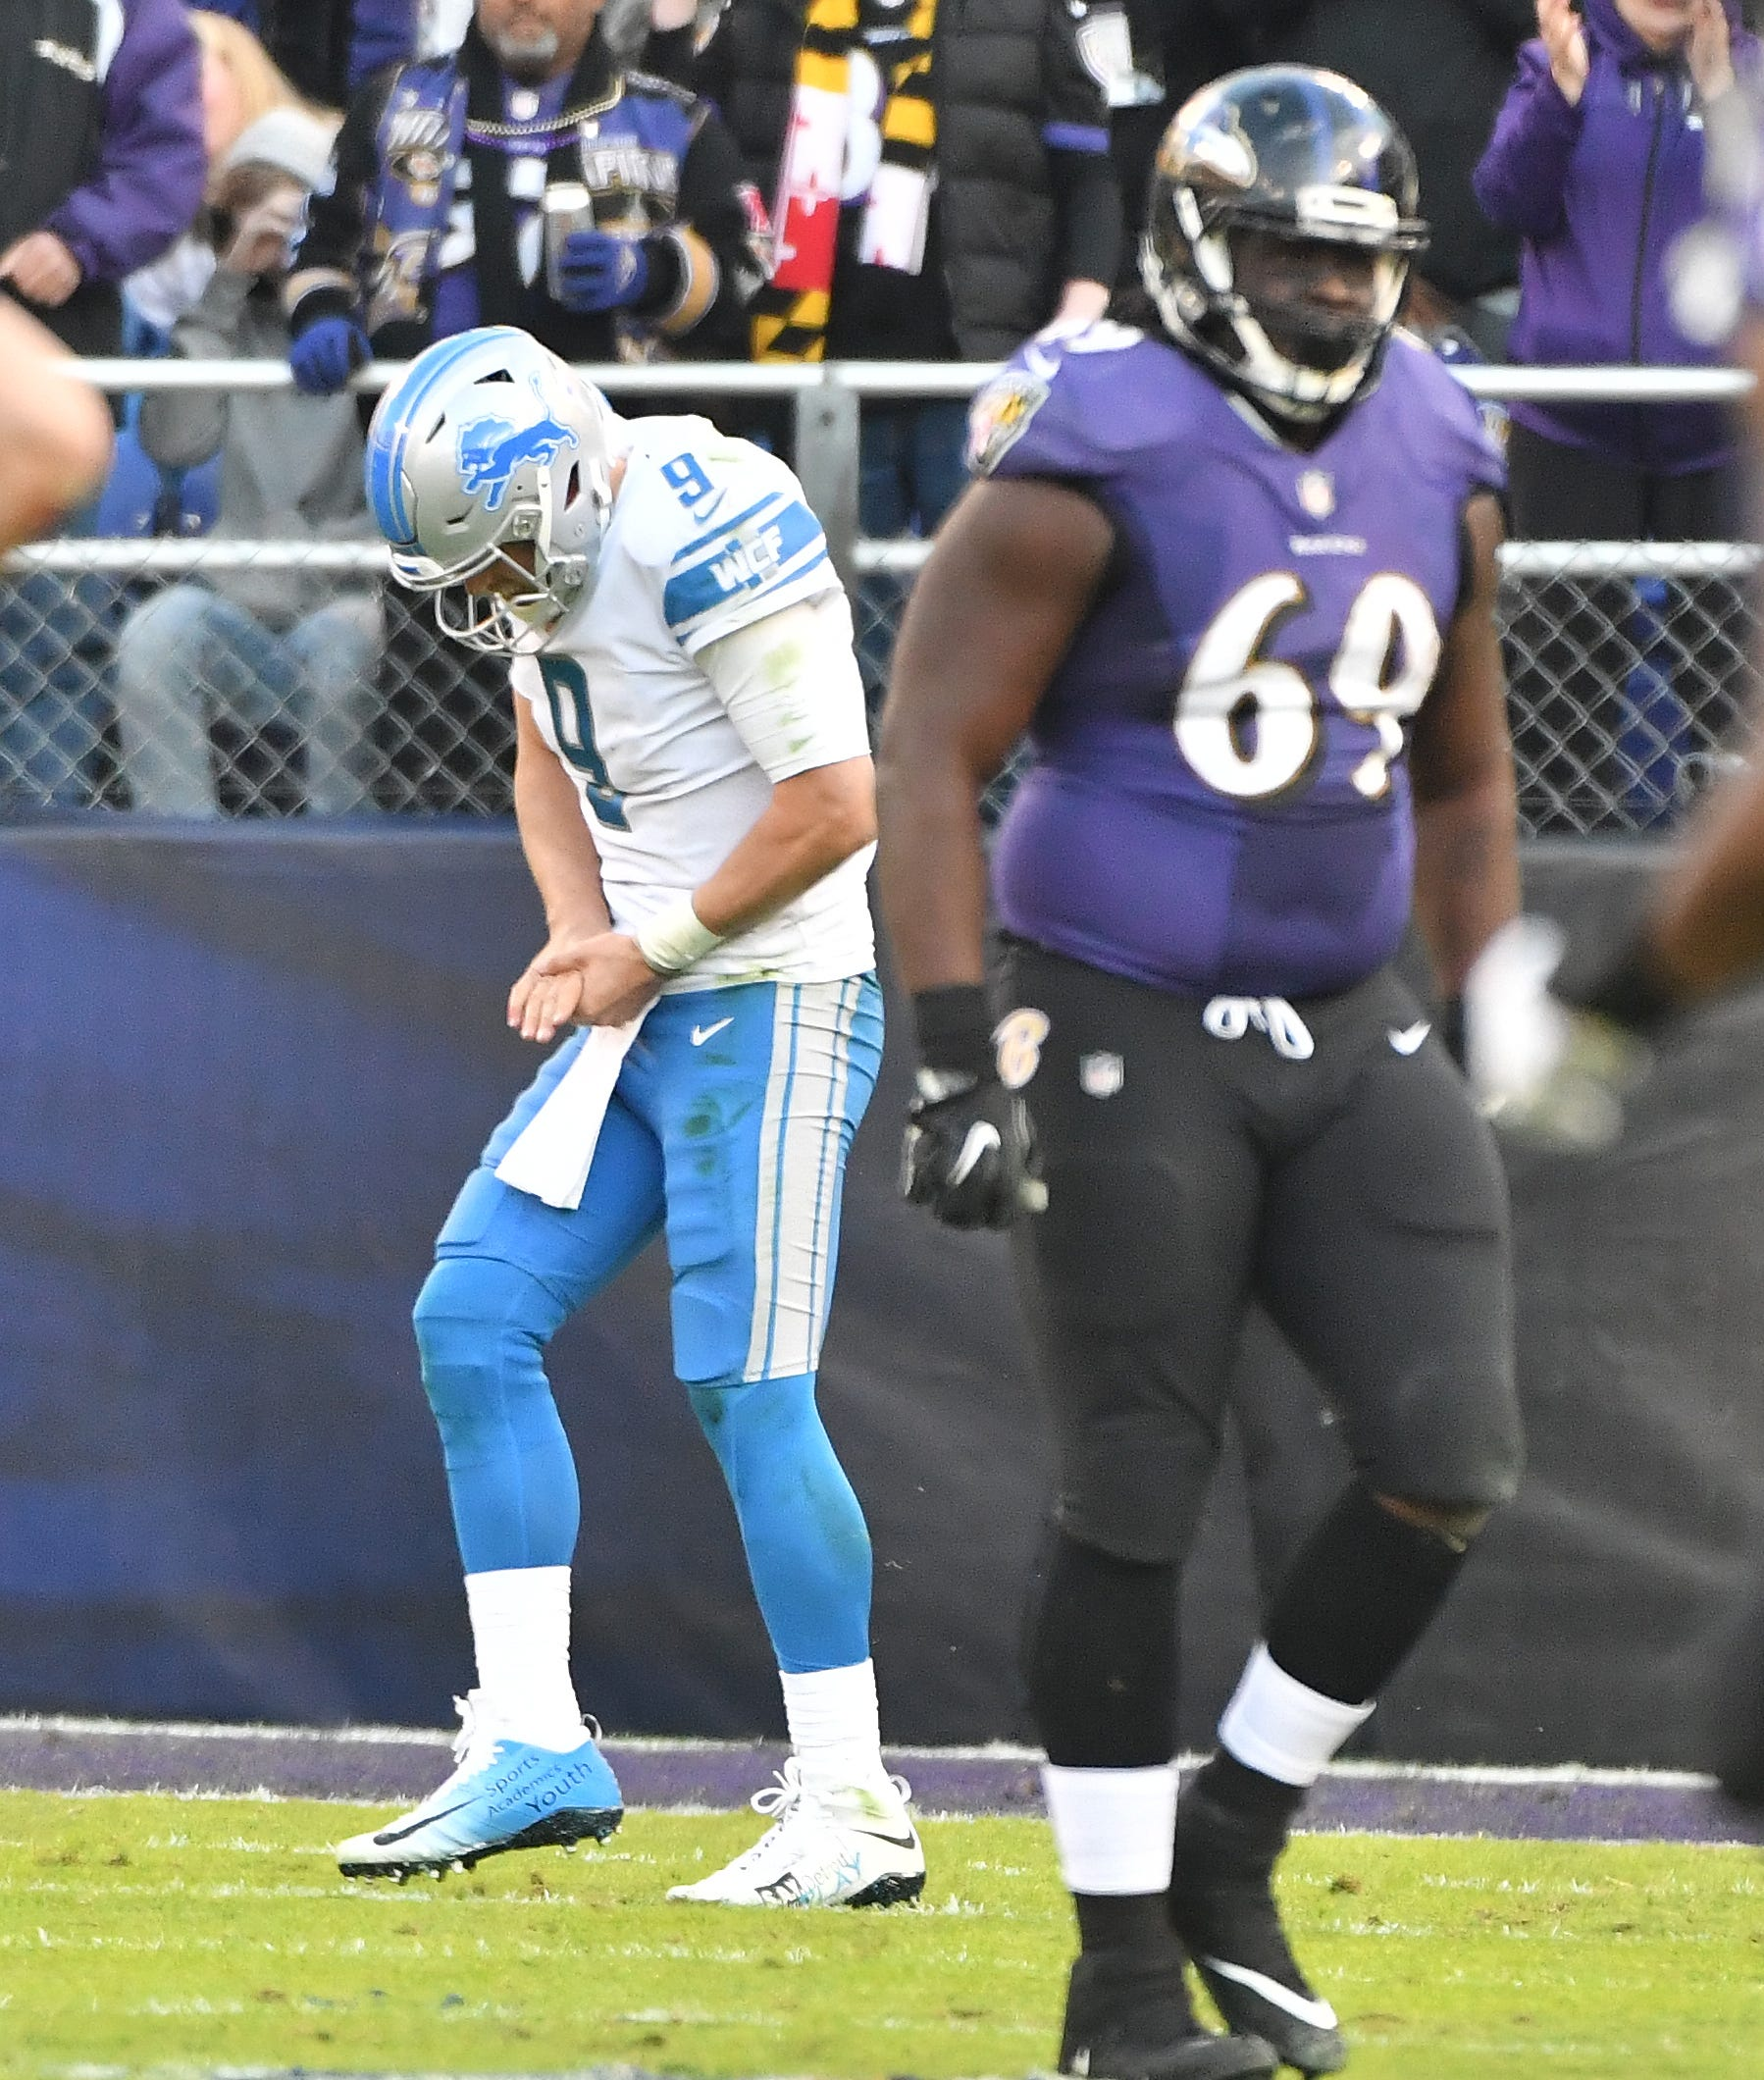 Lions quarterback Matthew Stafford heading to the sidelines